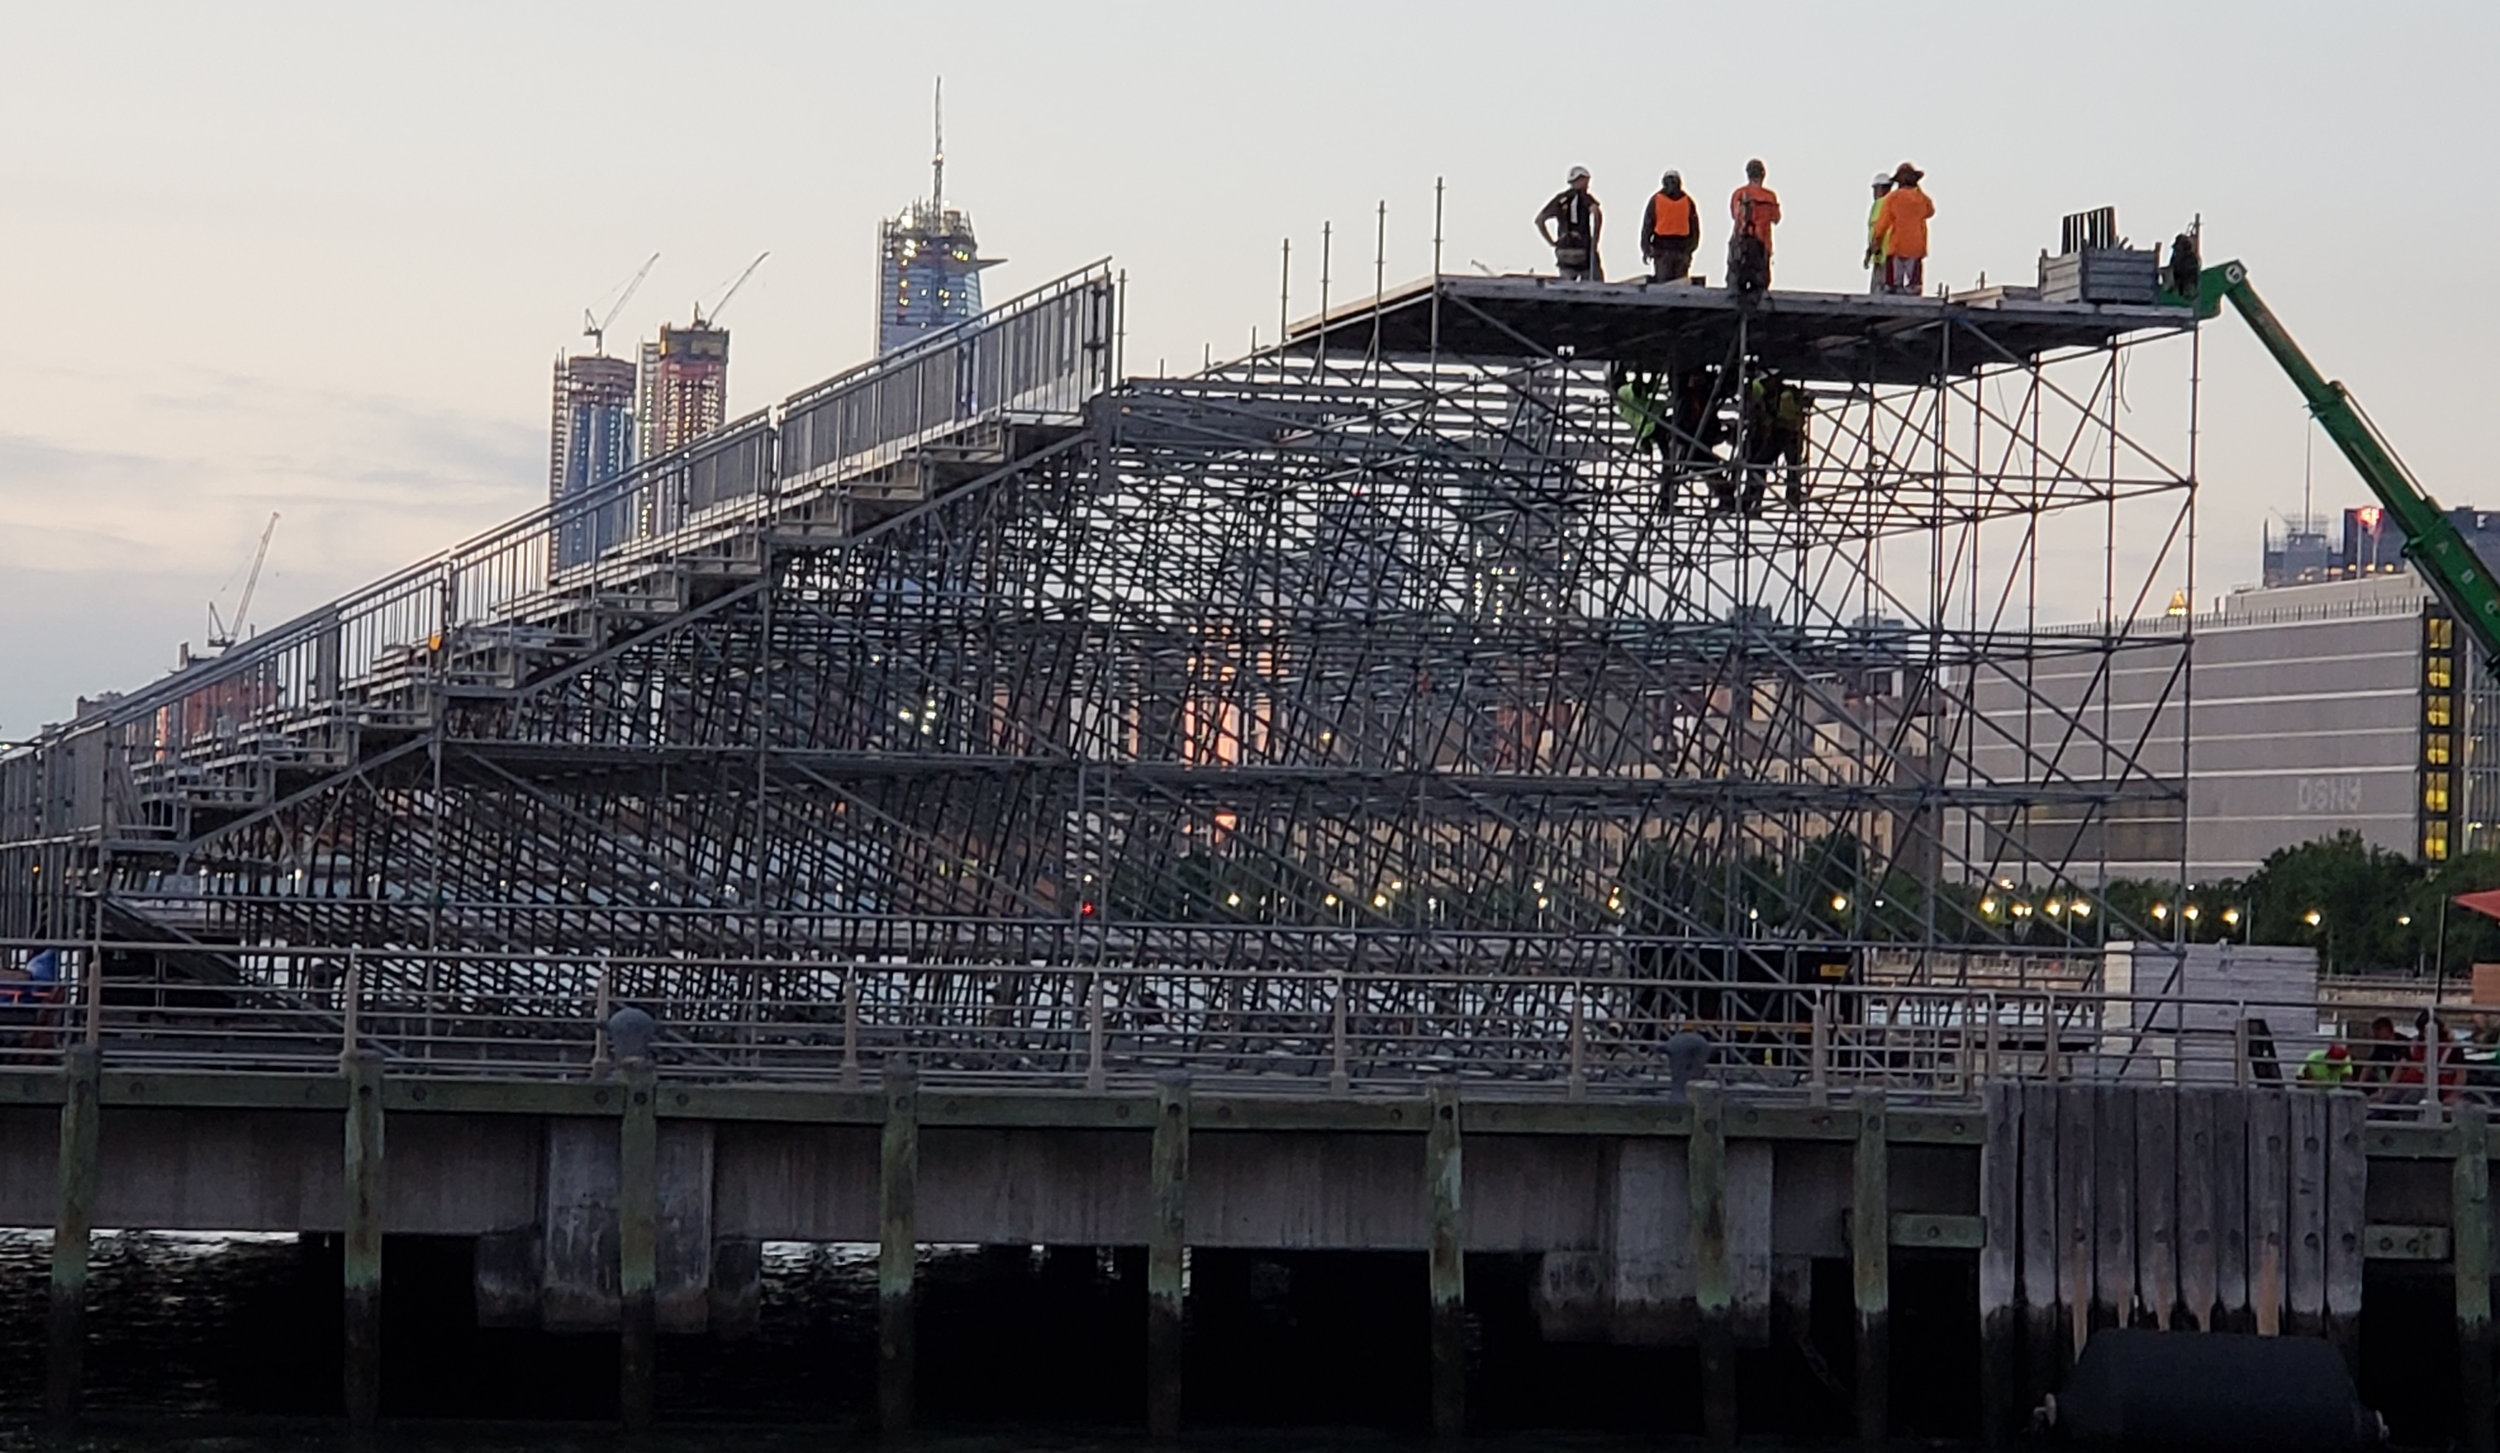 © James T. Snyder  Photograph: construction workers high on a scaffold without safety equipment on.